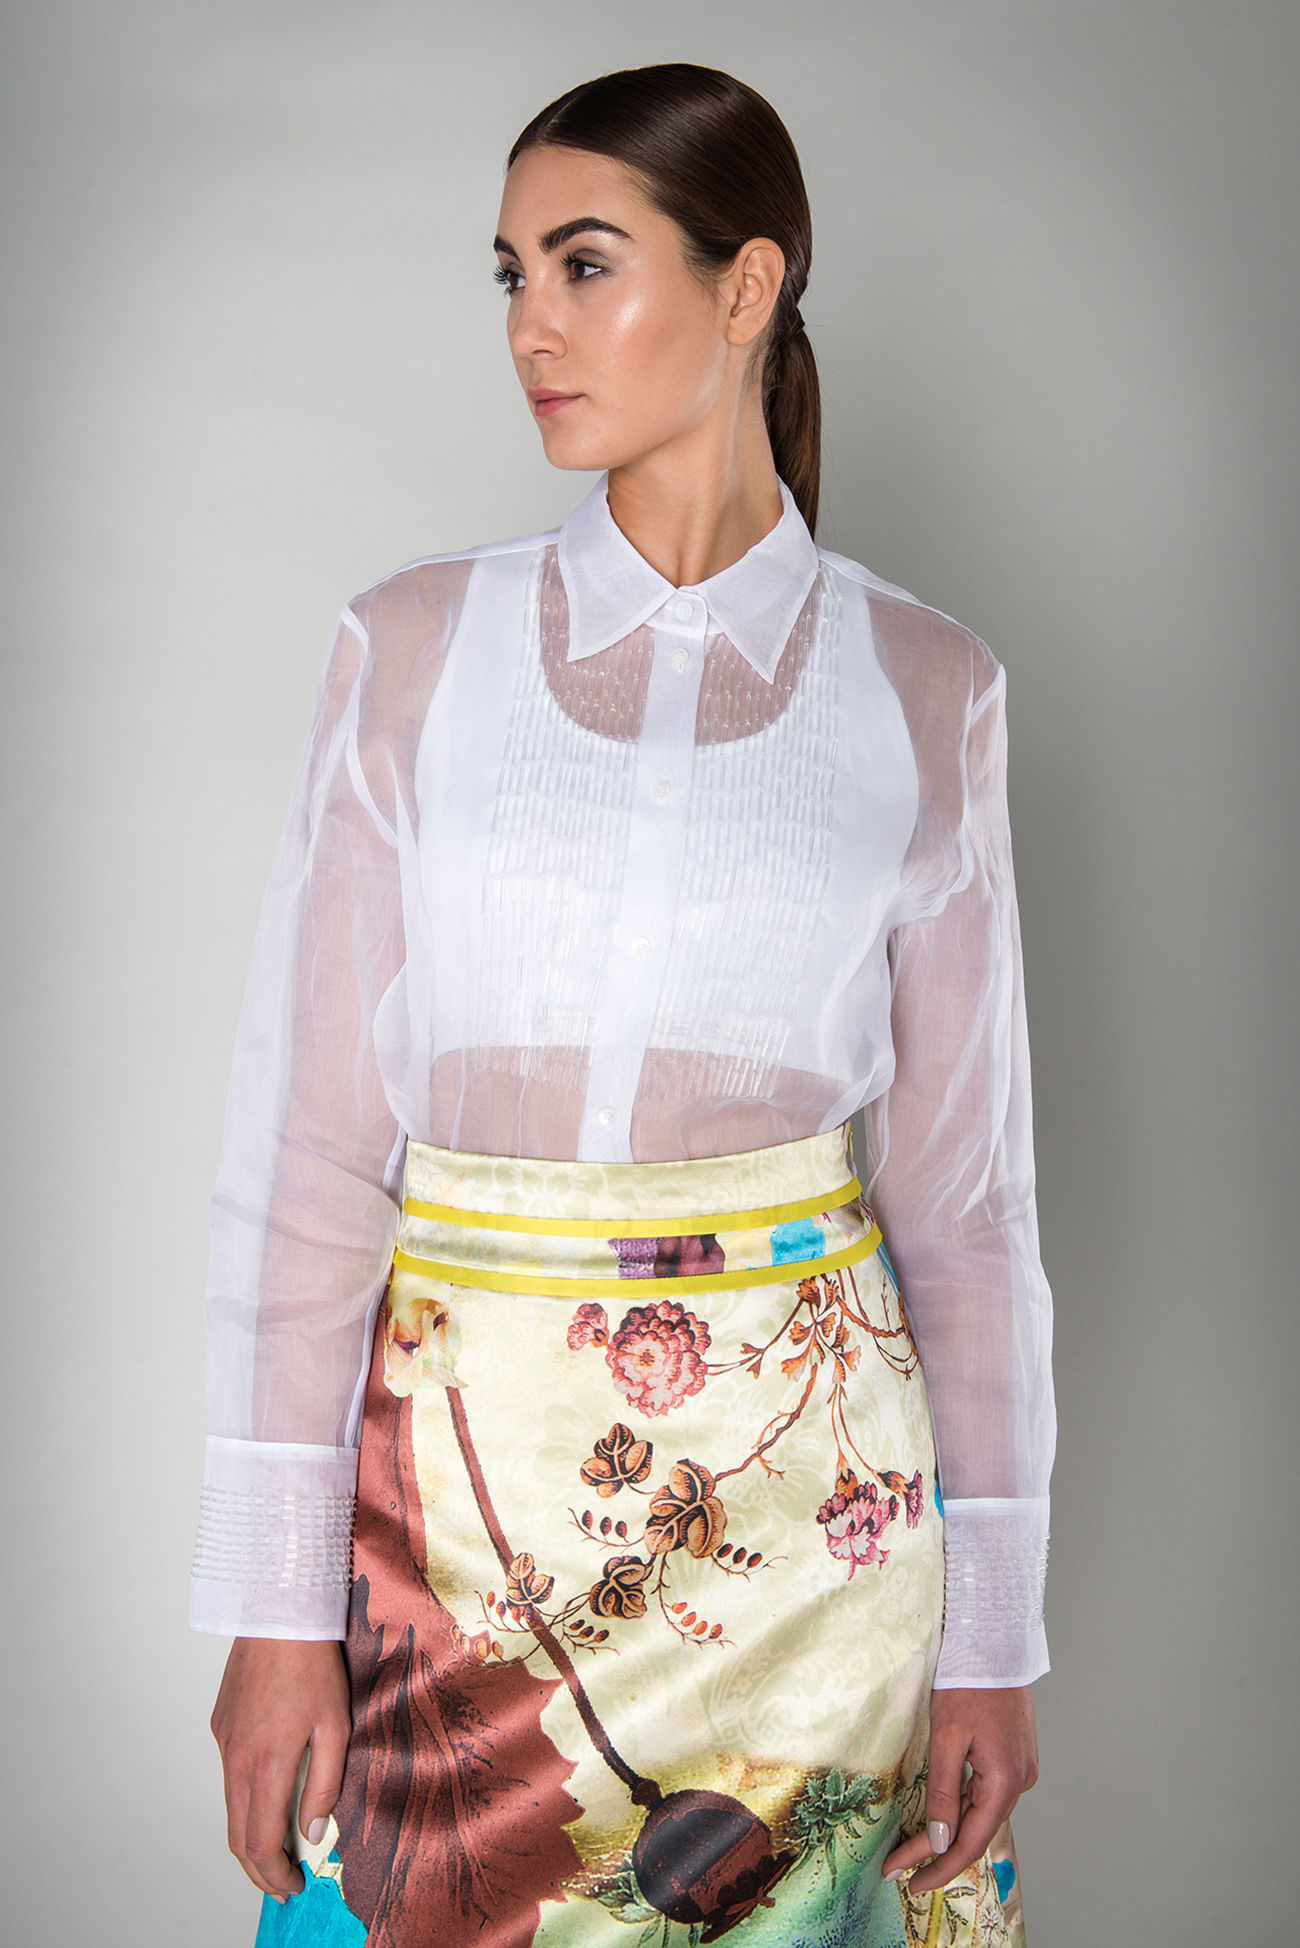 Blouse made of cotton organza<br />A must-have to fall in love with: this charming blouse made of high quality with its exquisitely crafted details highlights your feminine sense of style. It can be combined with skirts or pants. This blouse gives a final touch of exclusiveness.